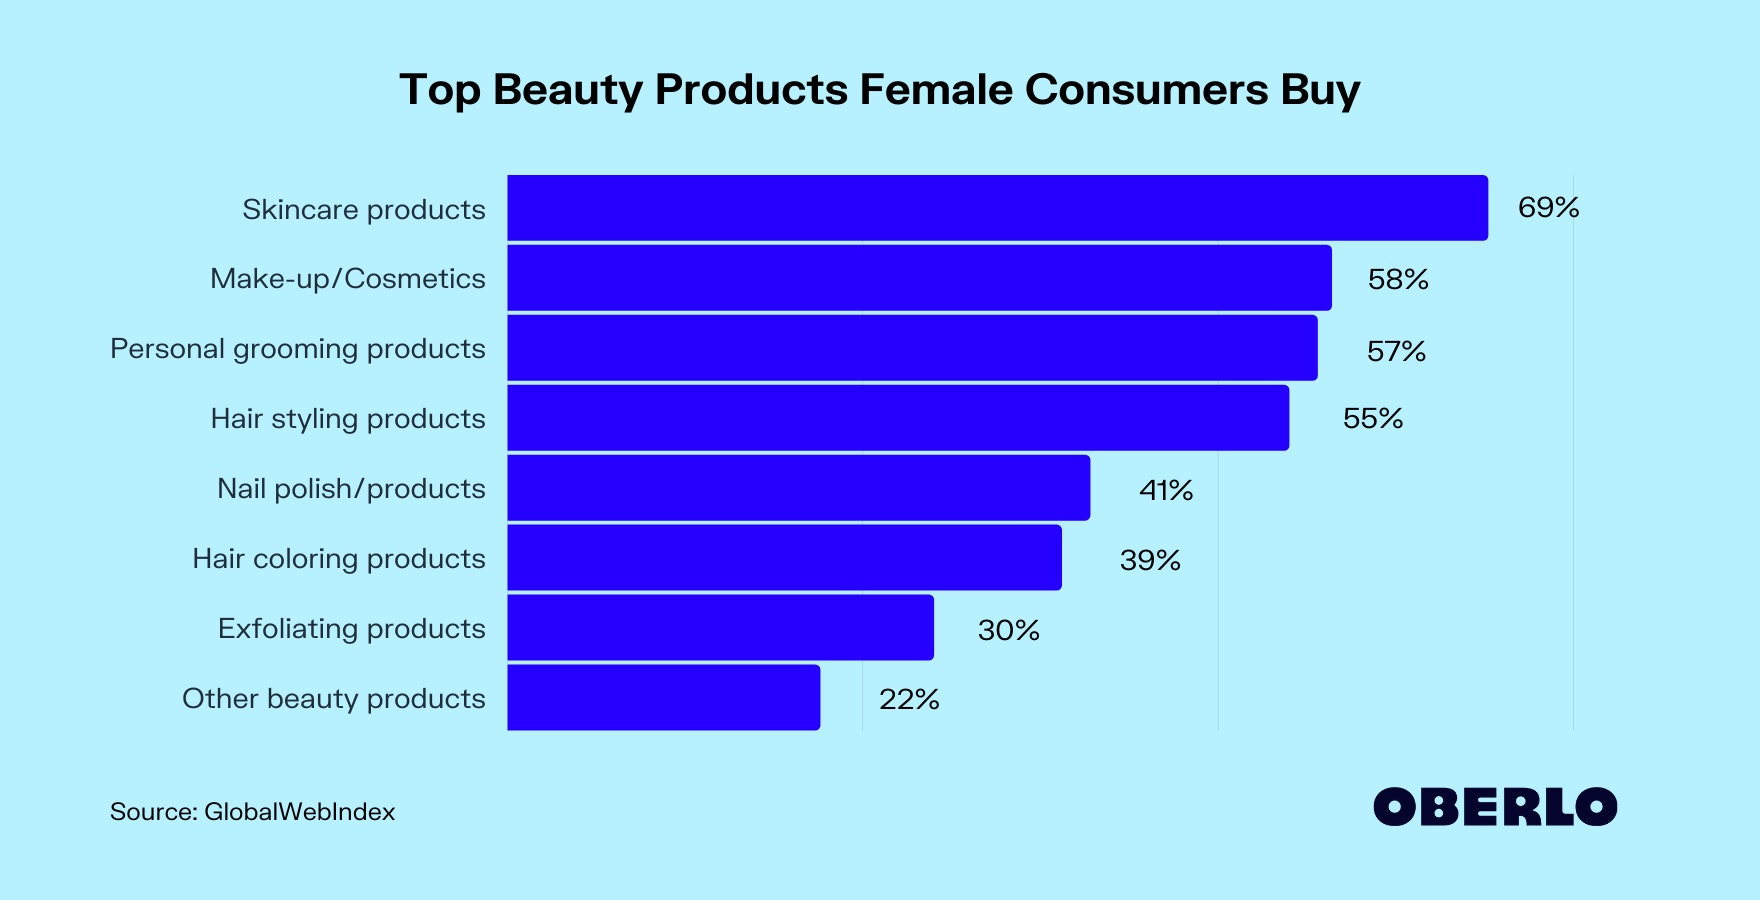 Top Beauty Products Female Consumers Buy